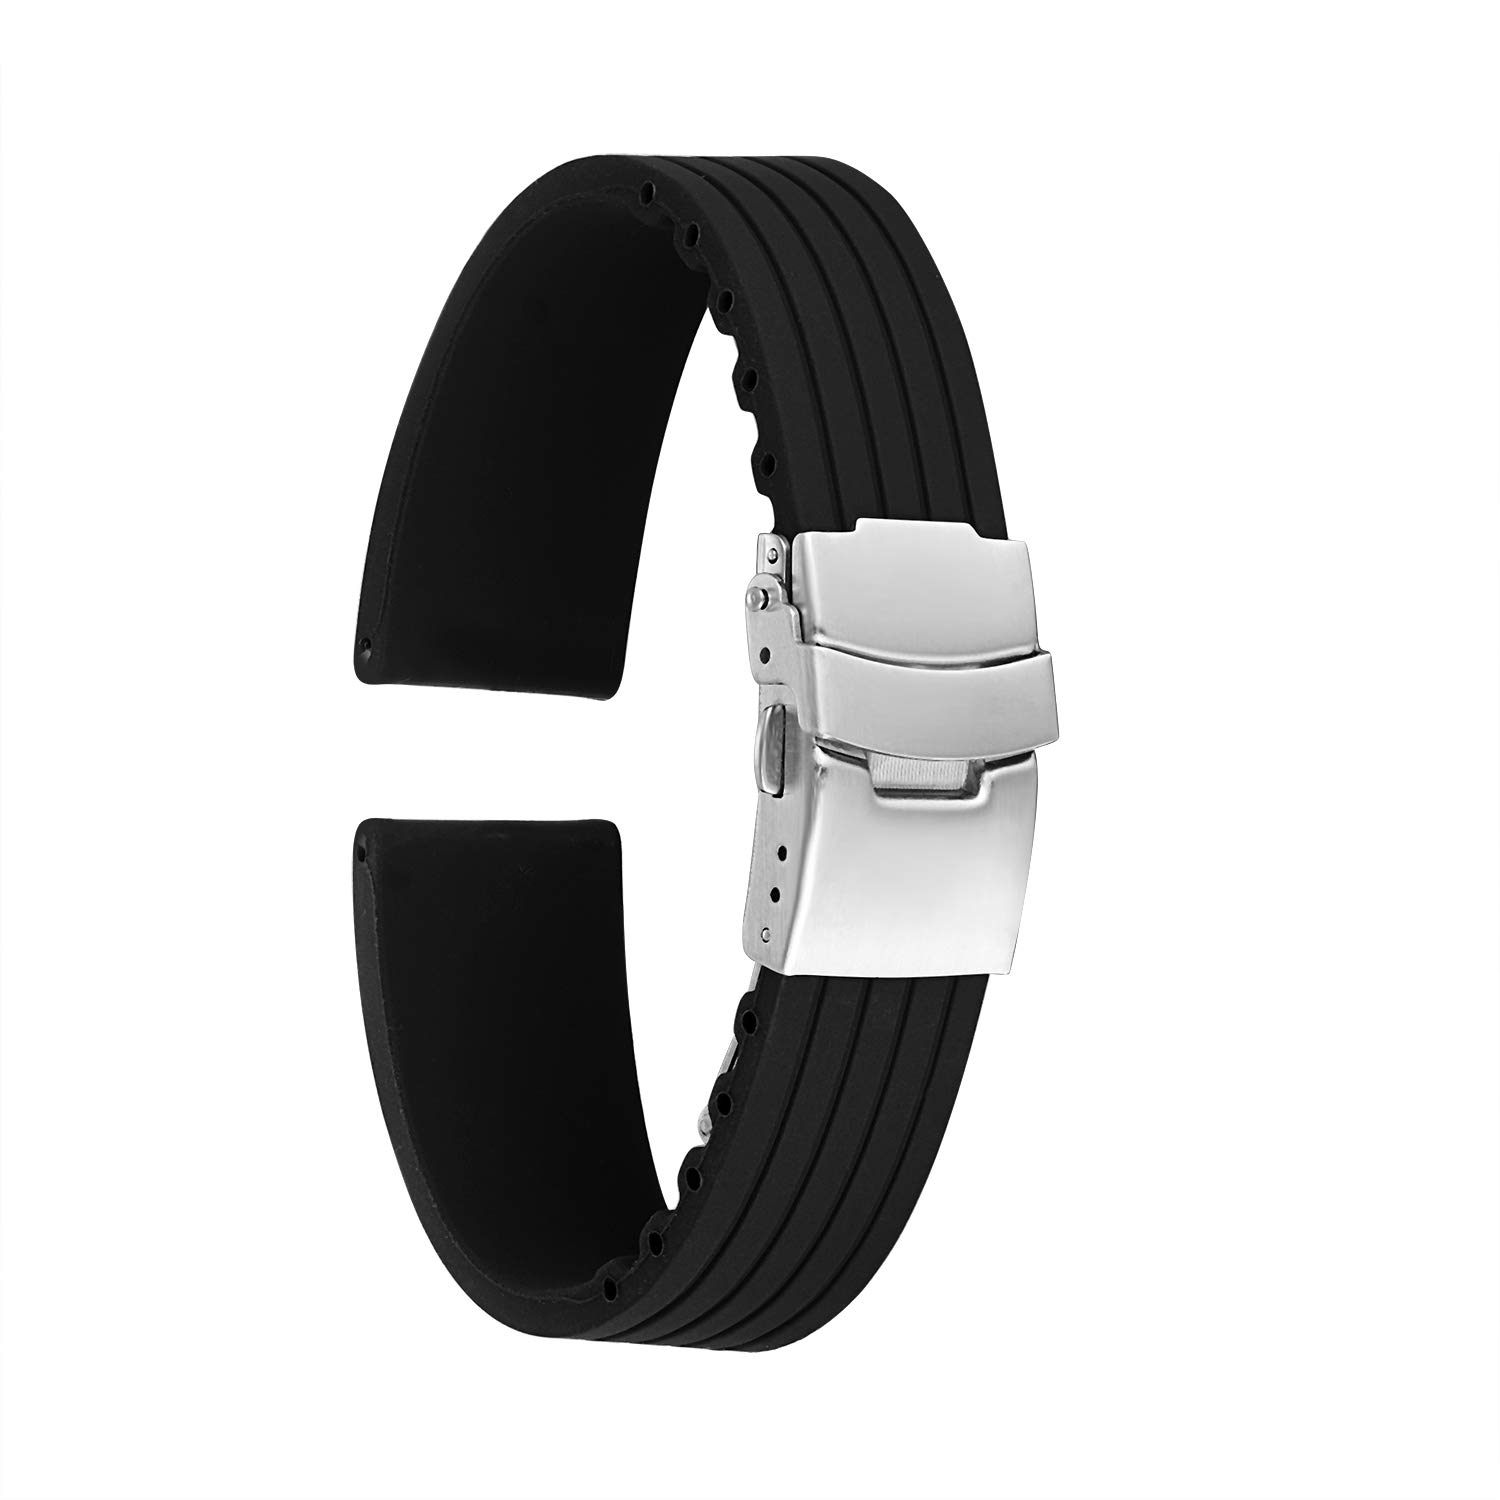 KZFashions Waterproof Sports Universal Tire Tire Tread One Over Silicone Watch Strap (22mm, Black)